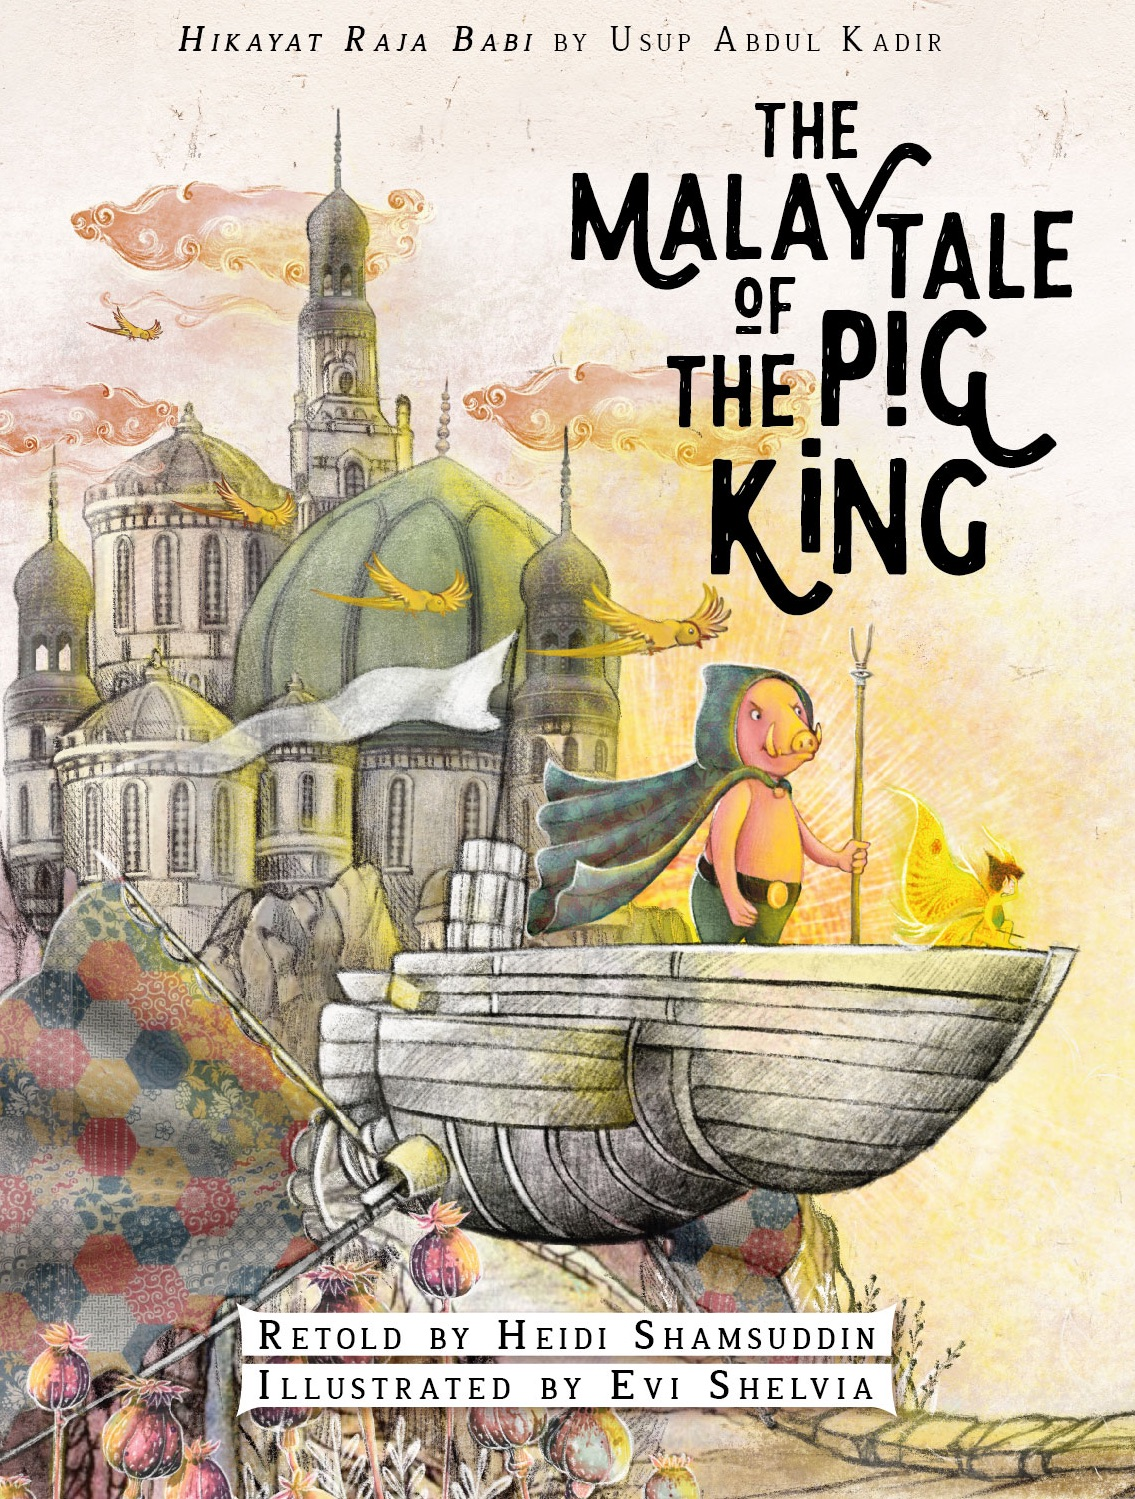 THE MALAY TALE OF THE PIG KING